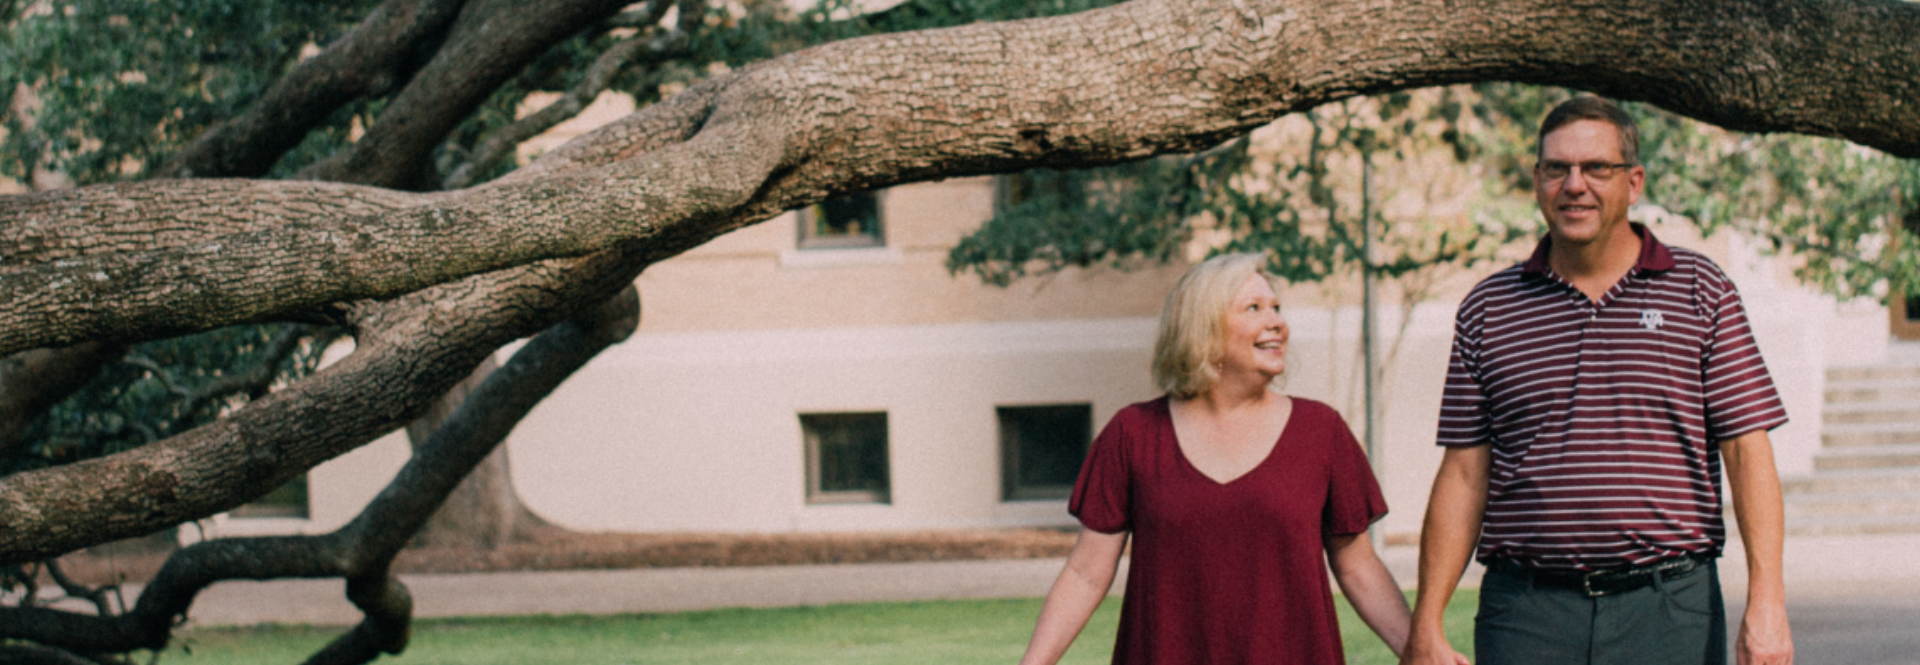 Double or even triple your impact at Texas A&M through utilizing gift-matching programs, just like Michelle